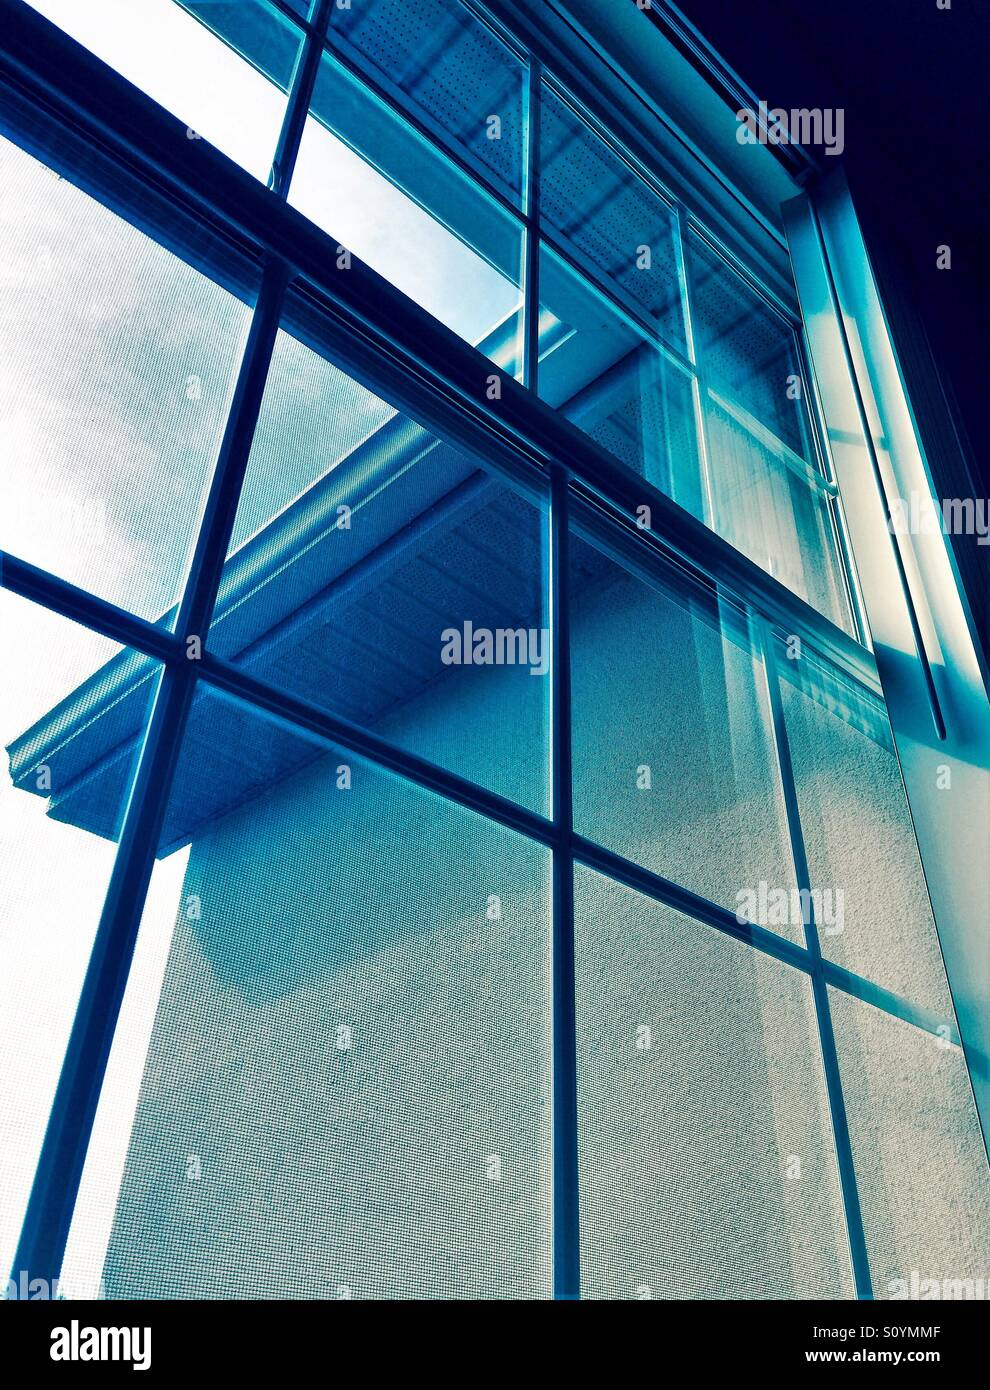 Window view with building detail in muted blue tones - Stock Image